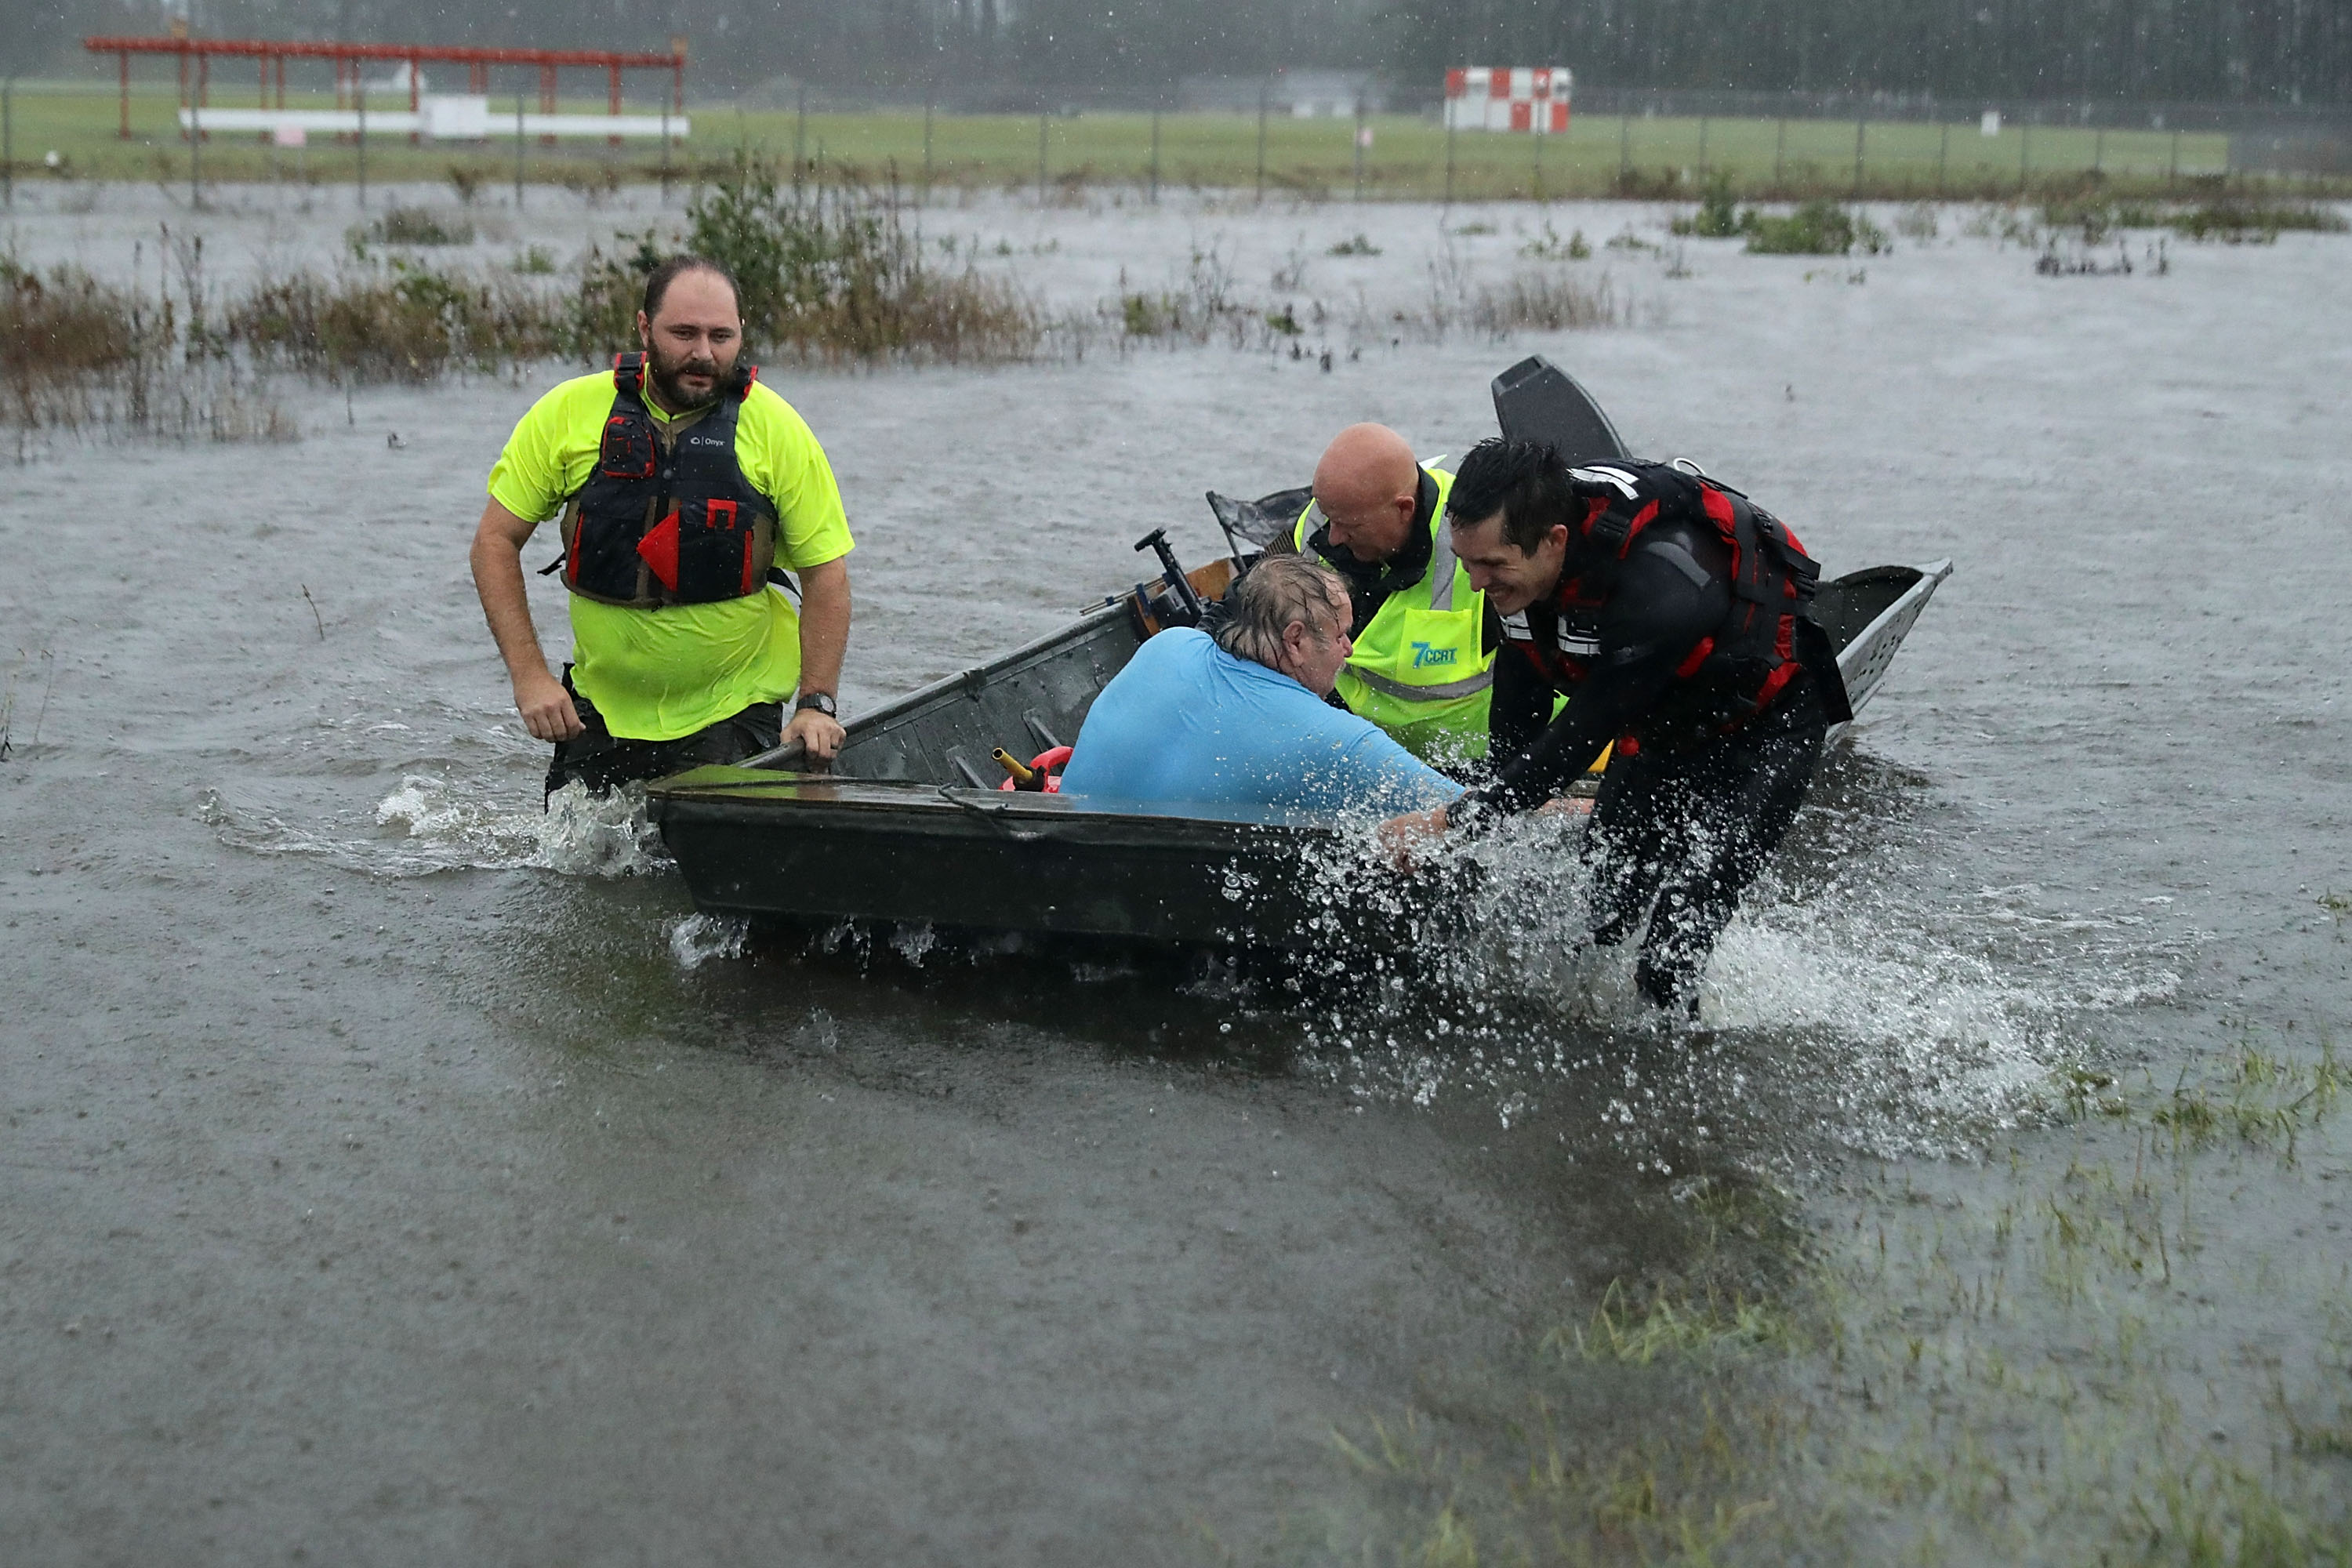 Volunteers from the Civilian Crisis Response Team rescue a man with chest pains from his flooded home  in James City, NC on Sept. 14, 2018.